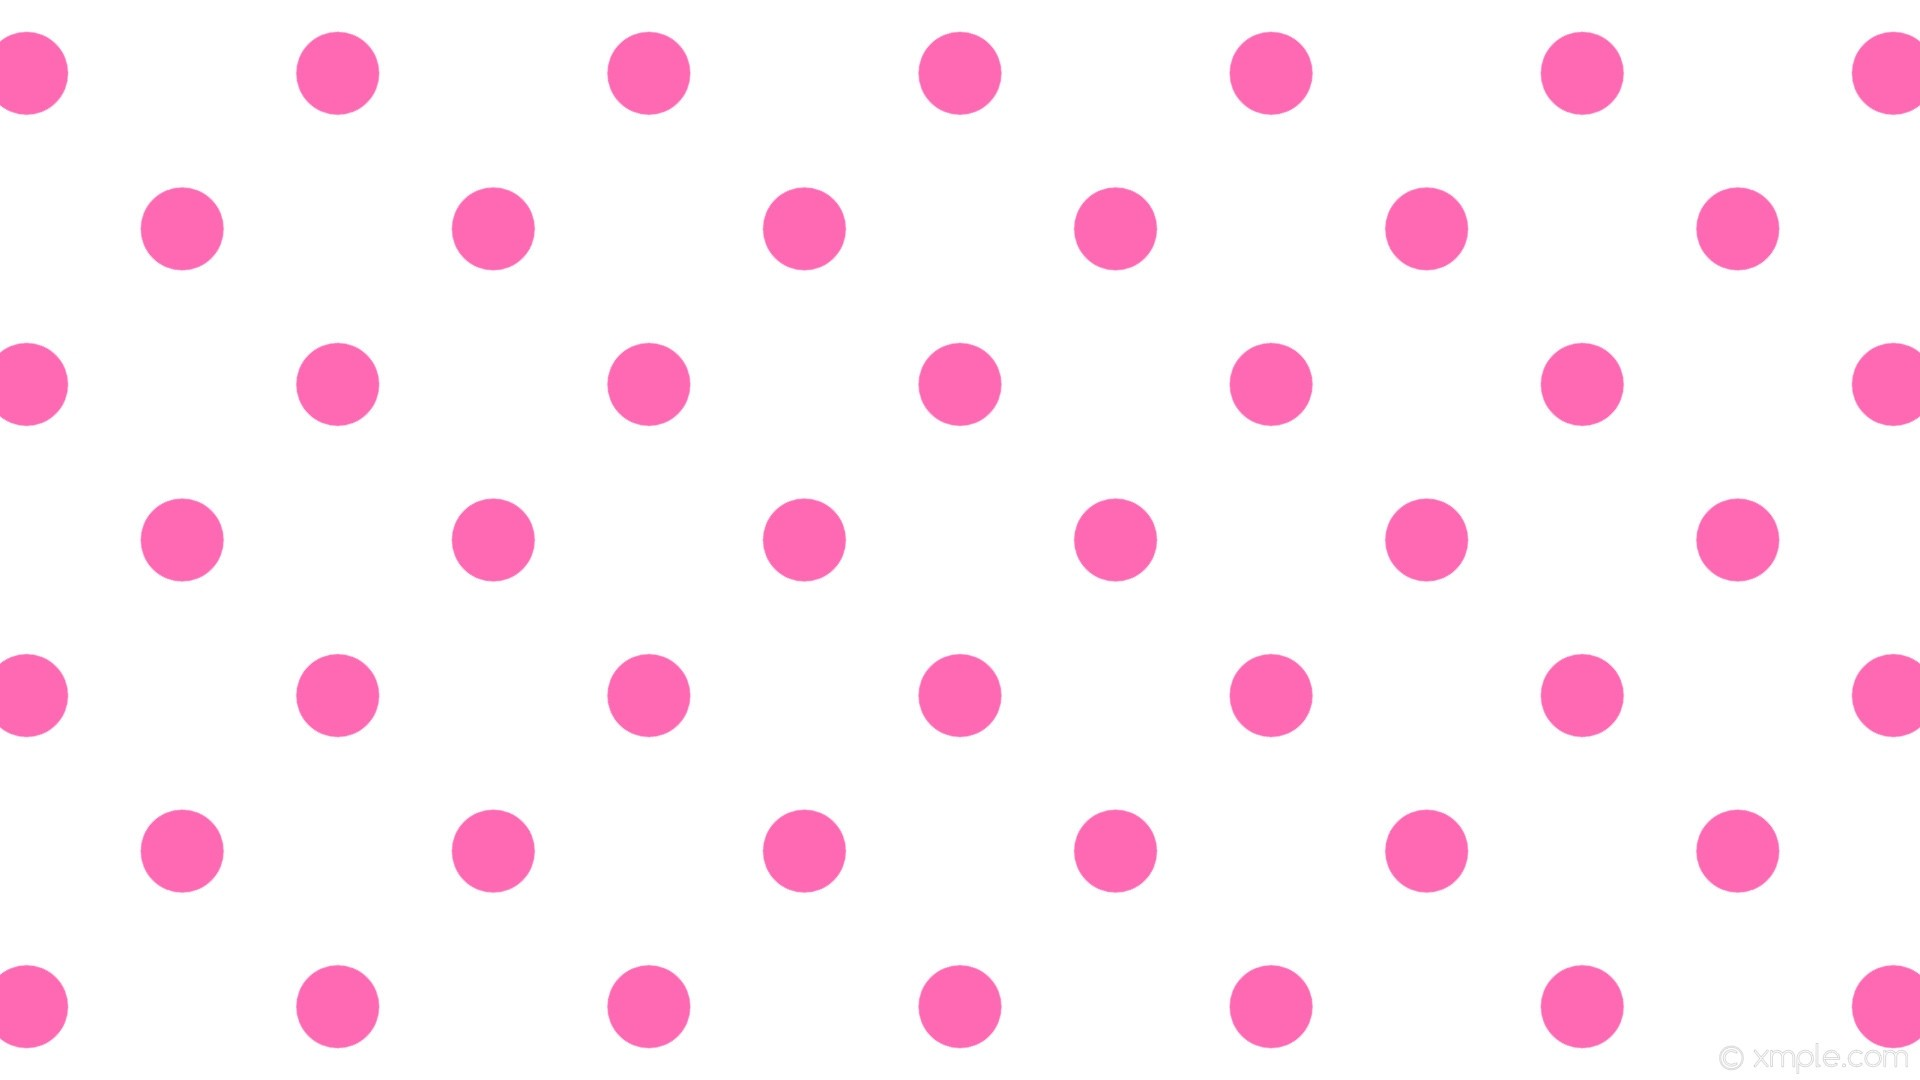 Polka Dot Free Wallpaper and Background